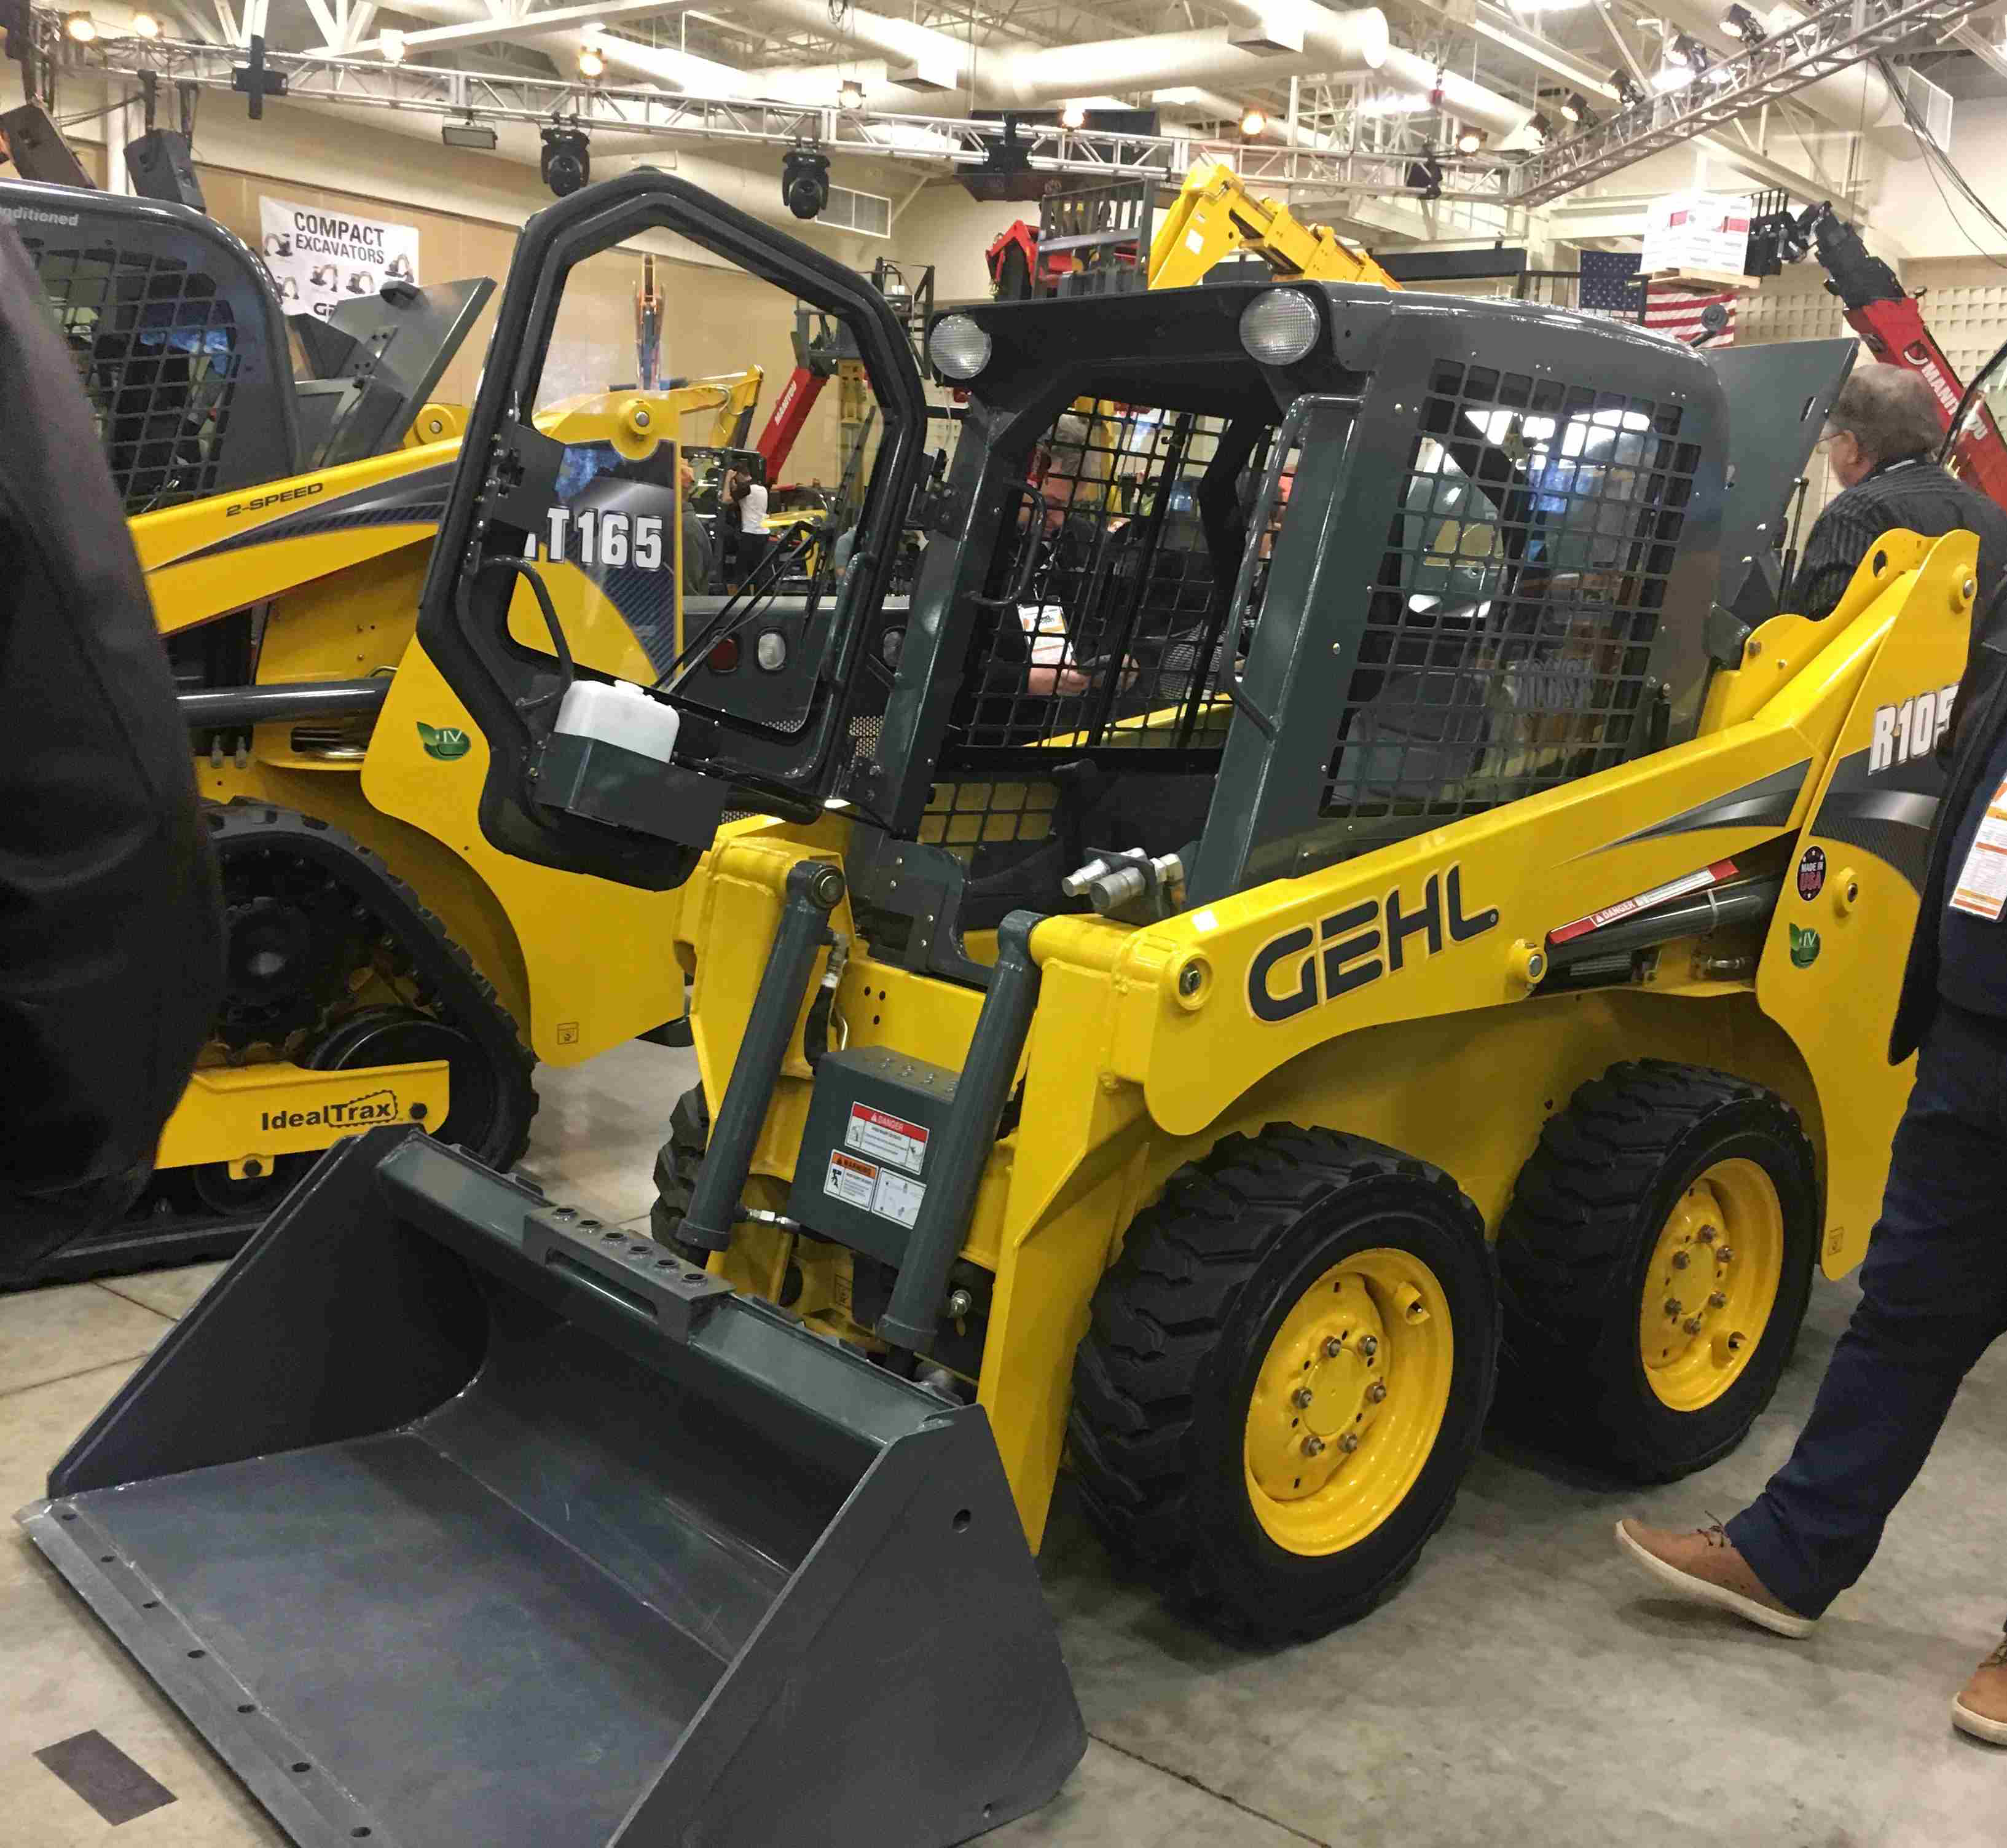 Gehl, Mustang present small, powerful compact skid loaders